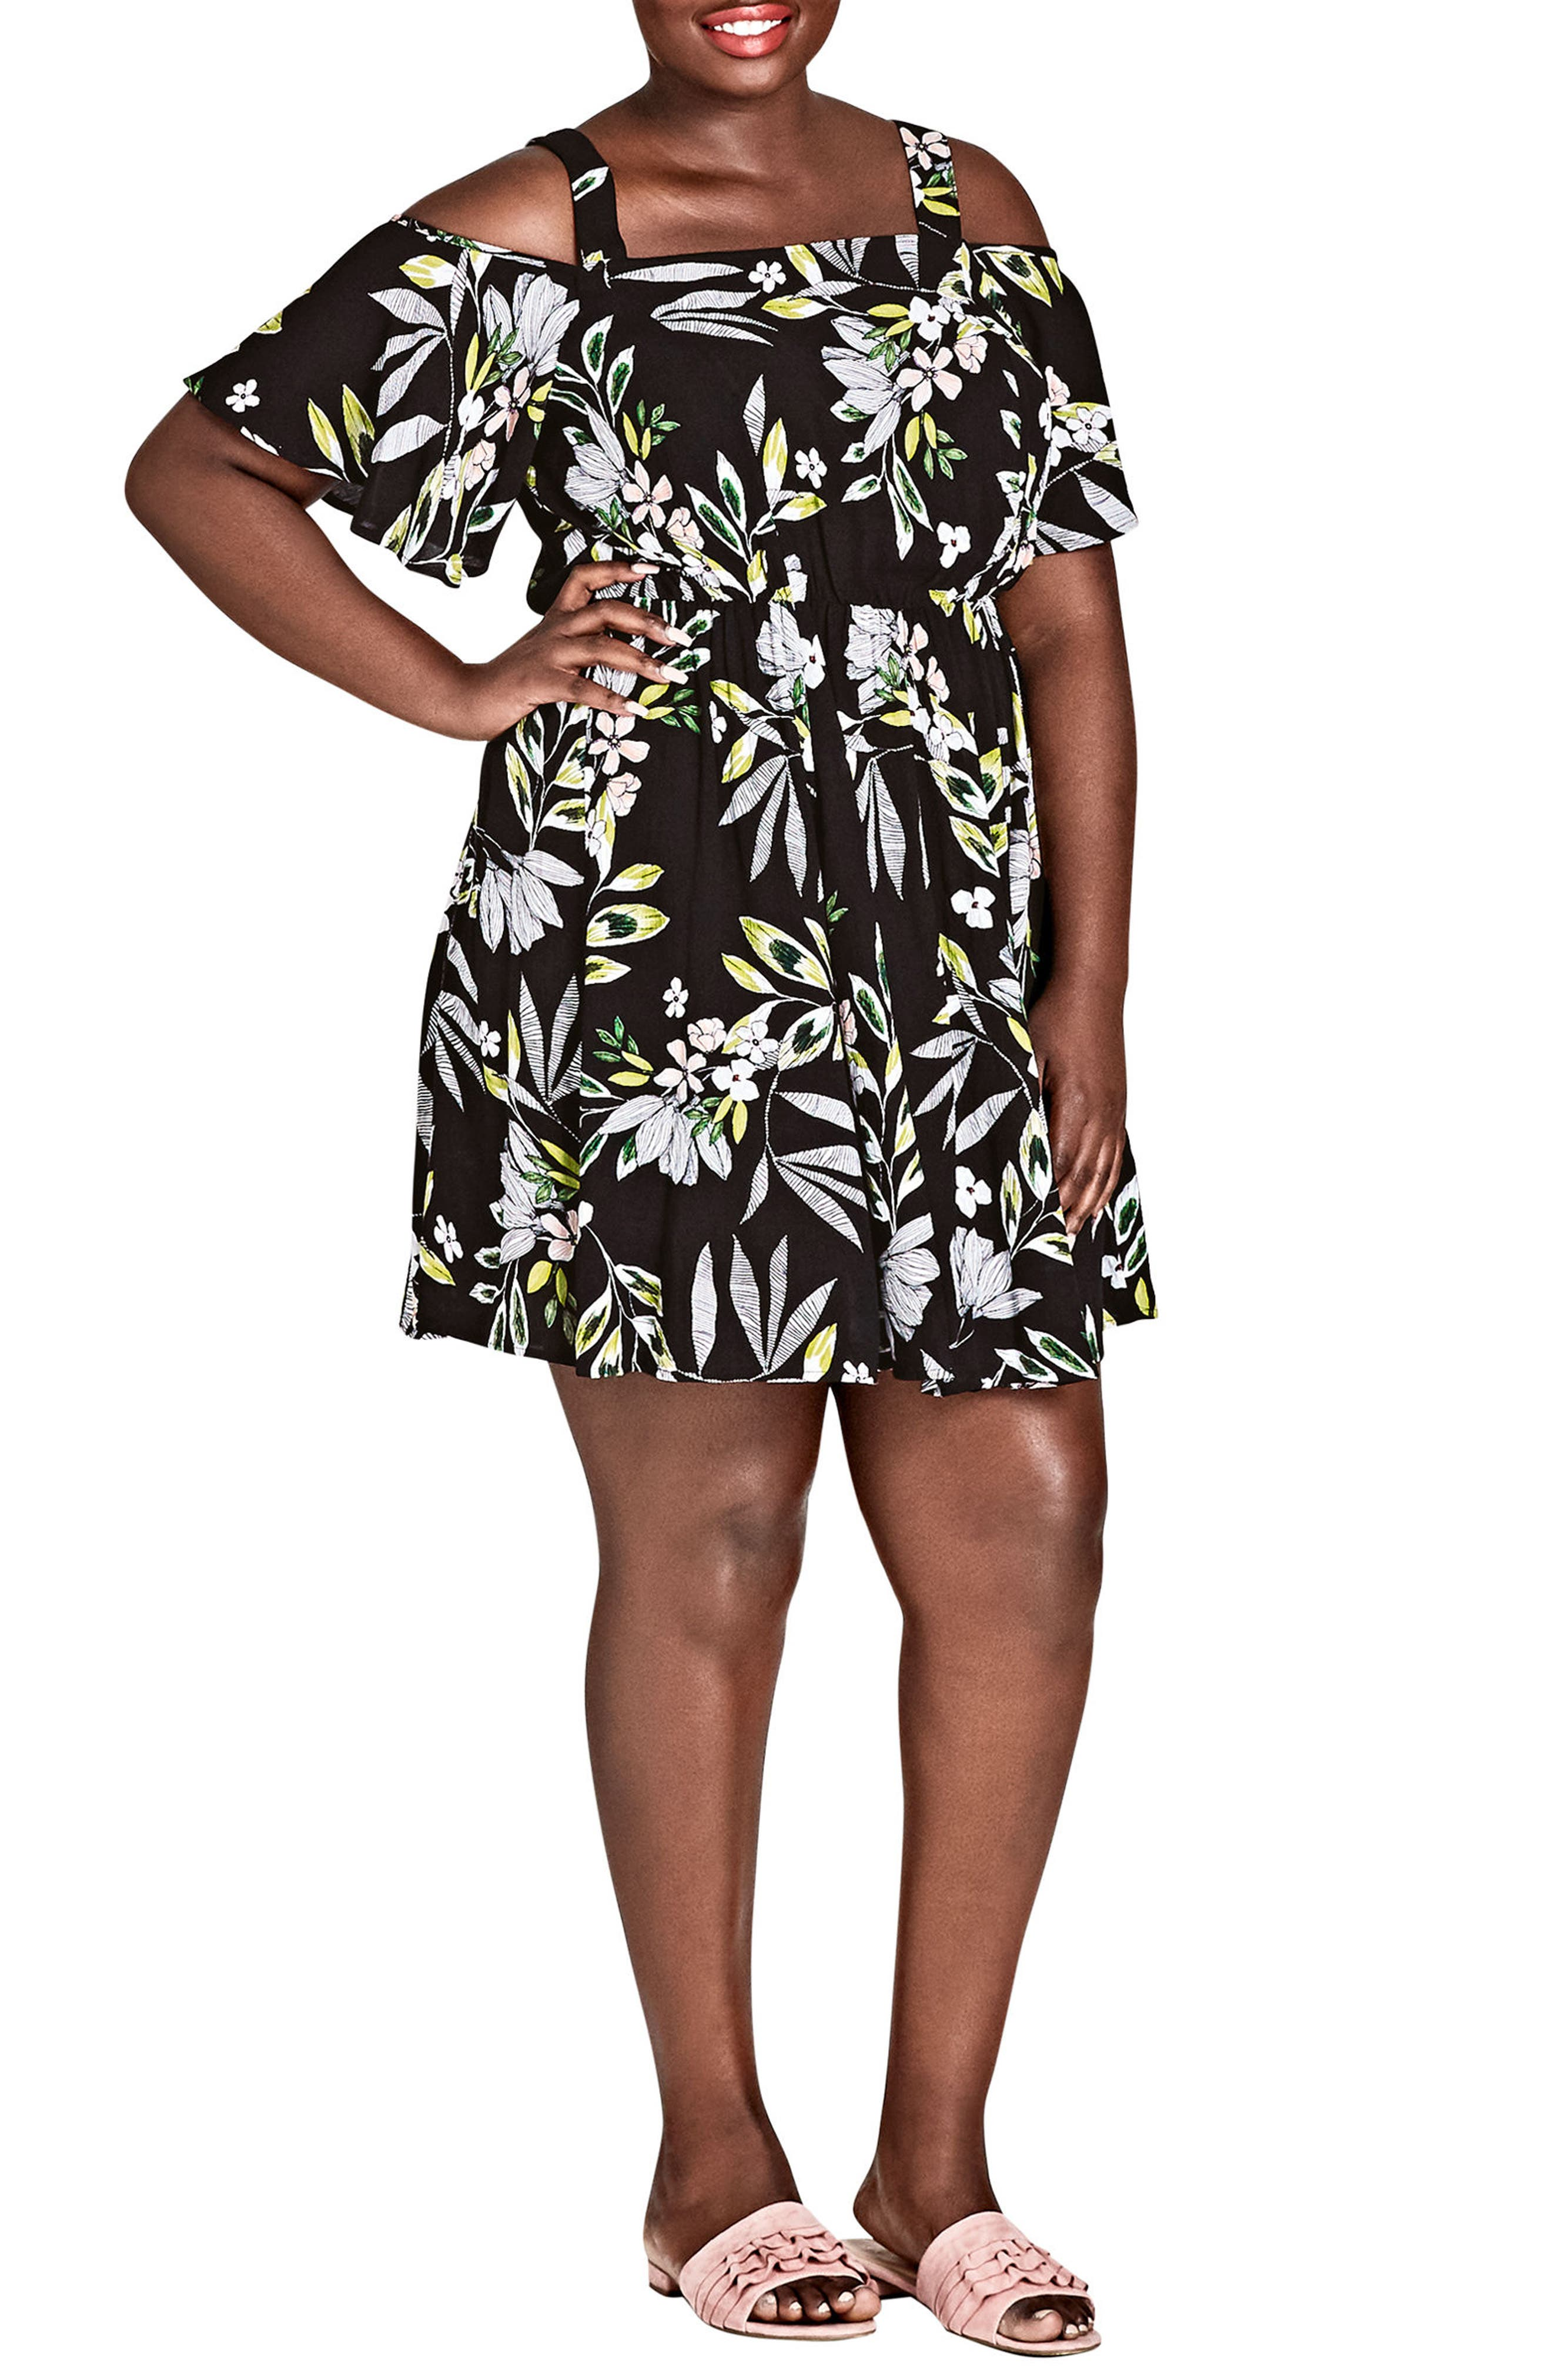 Maui Floral Cold Shoulder Dress,                             Main thumbnail 1, color,                             MAUI FLORAL